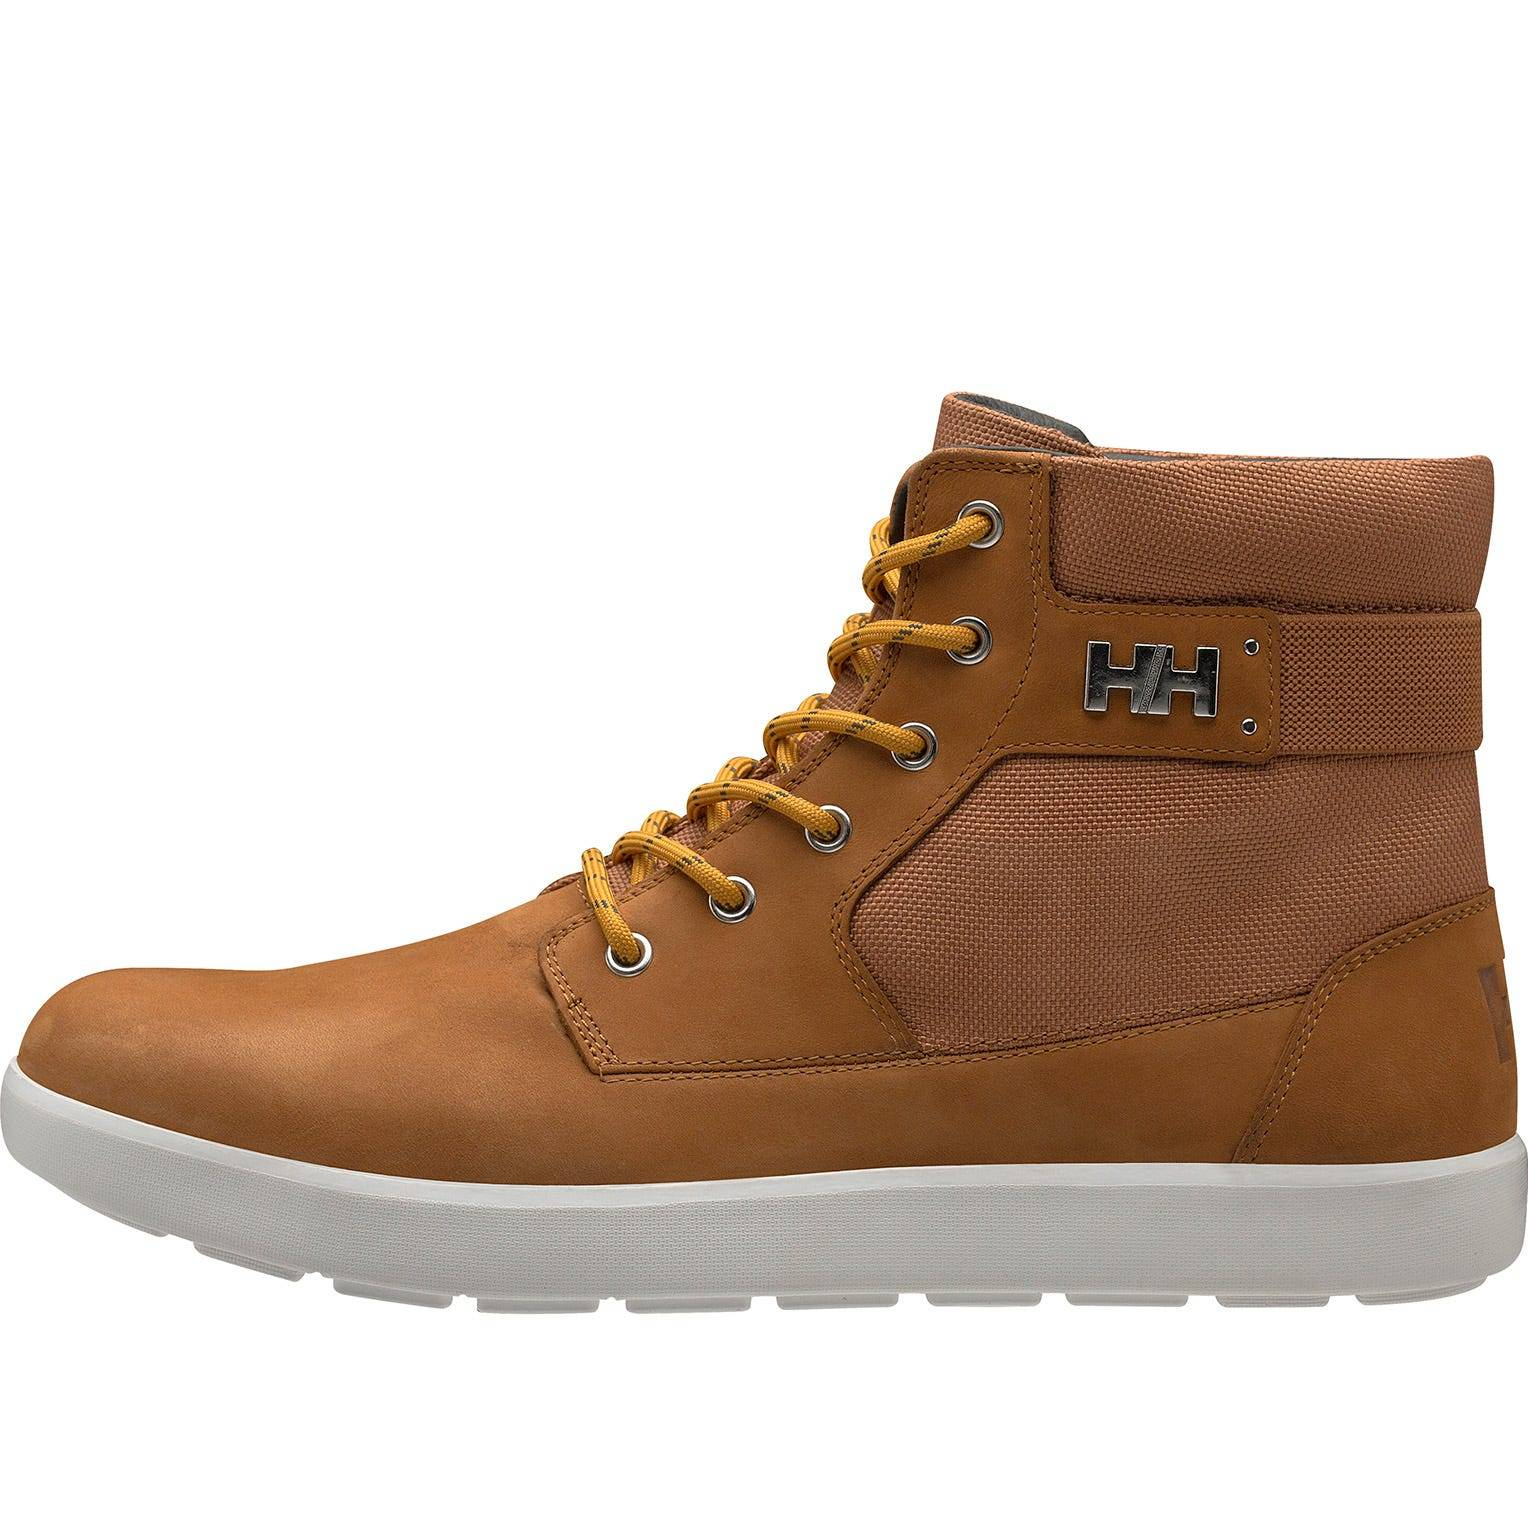 Helly Hansen Stockholm 2 Mens Casual Shoe Brown 9.5